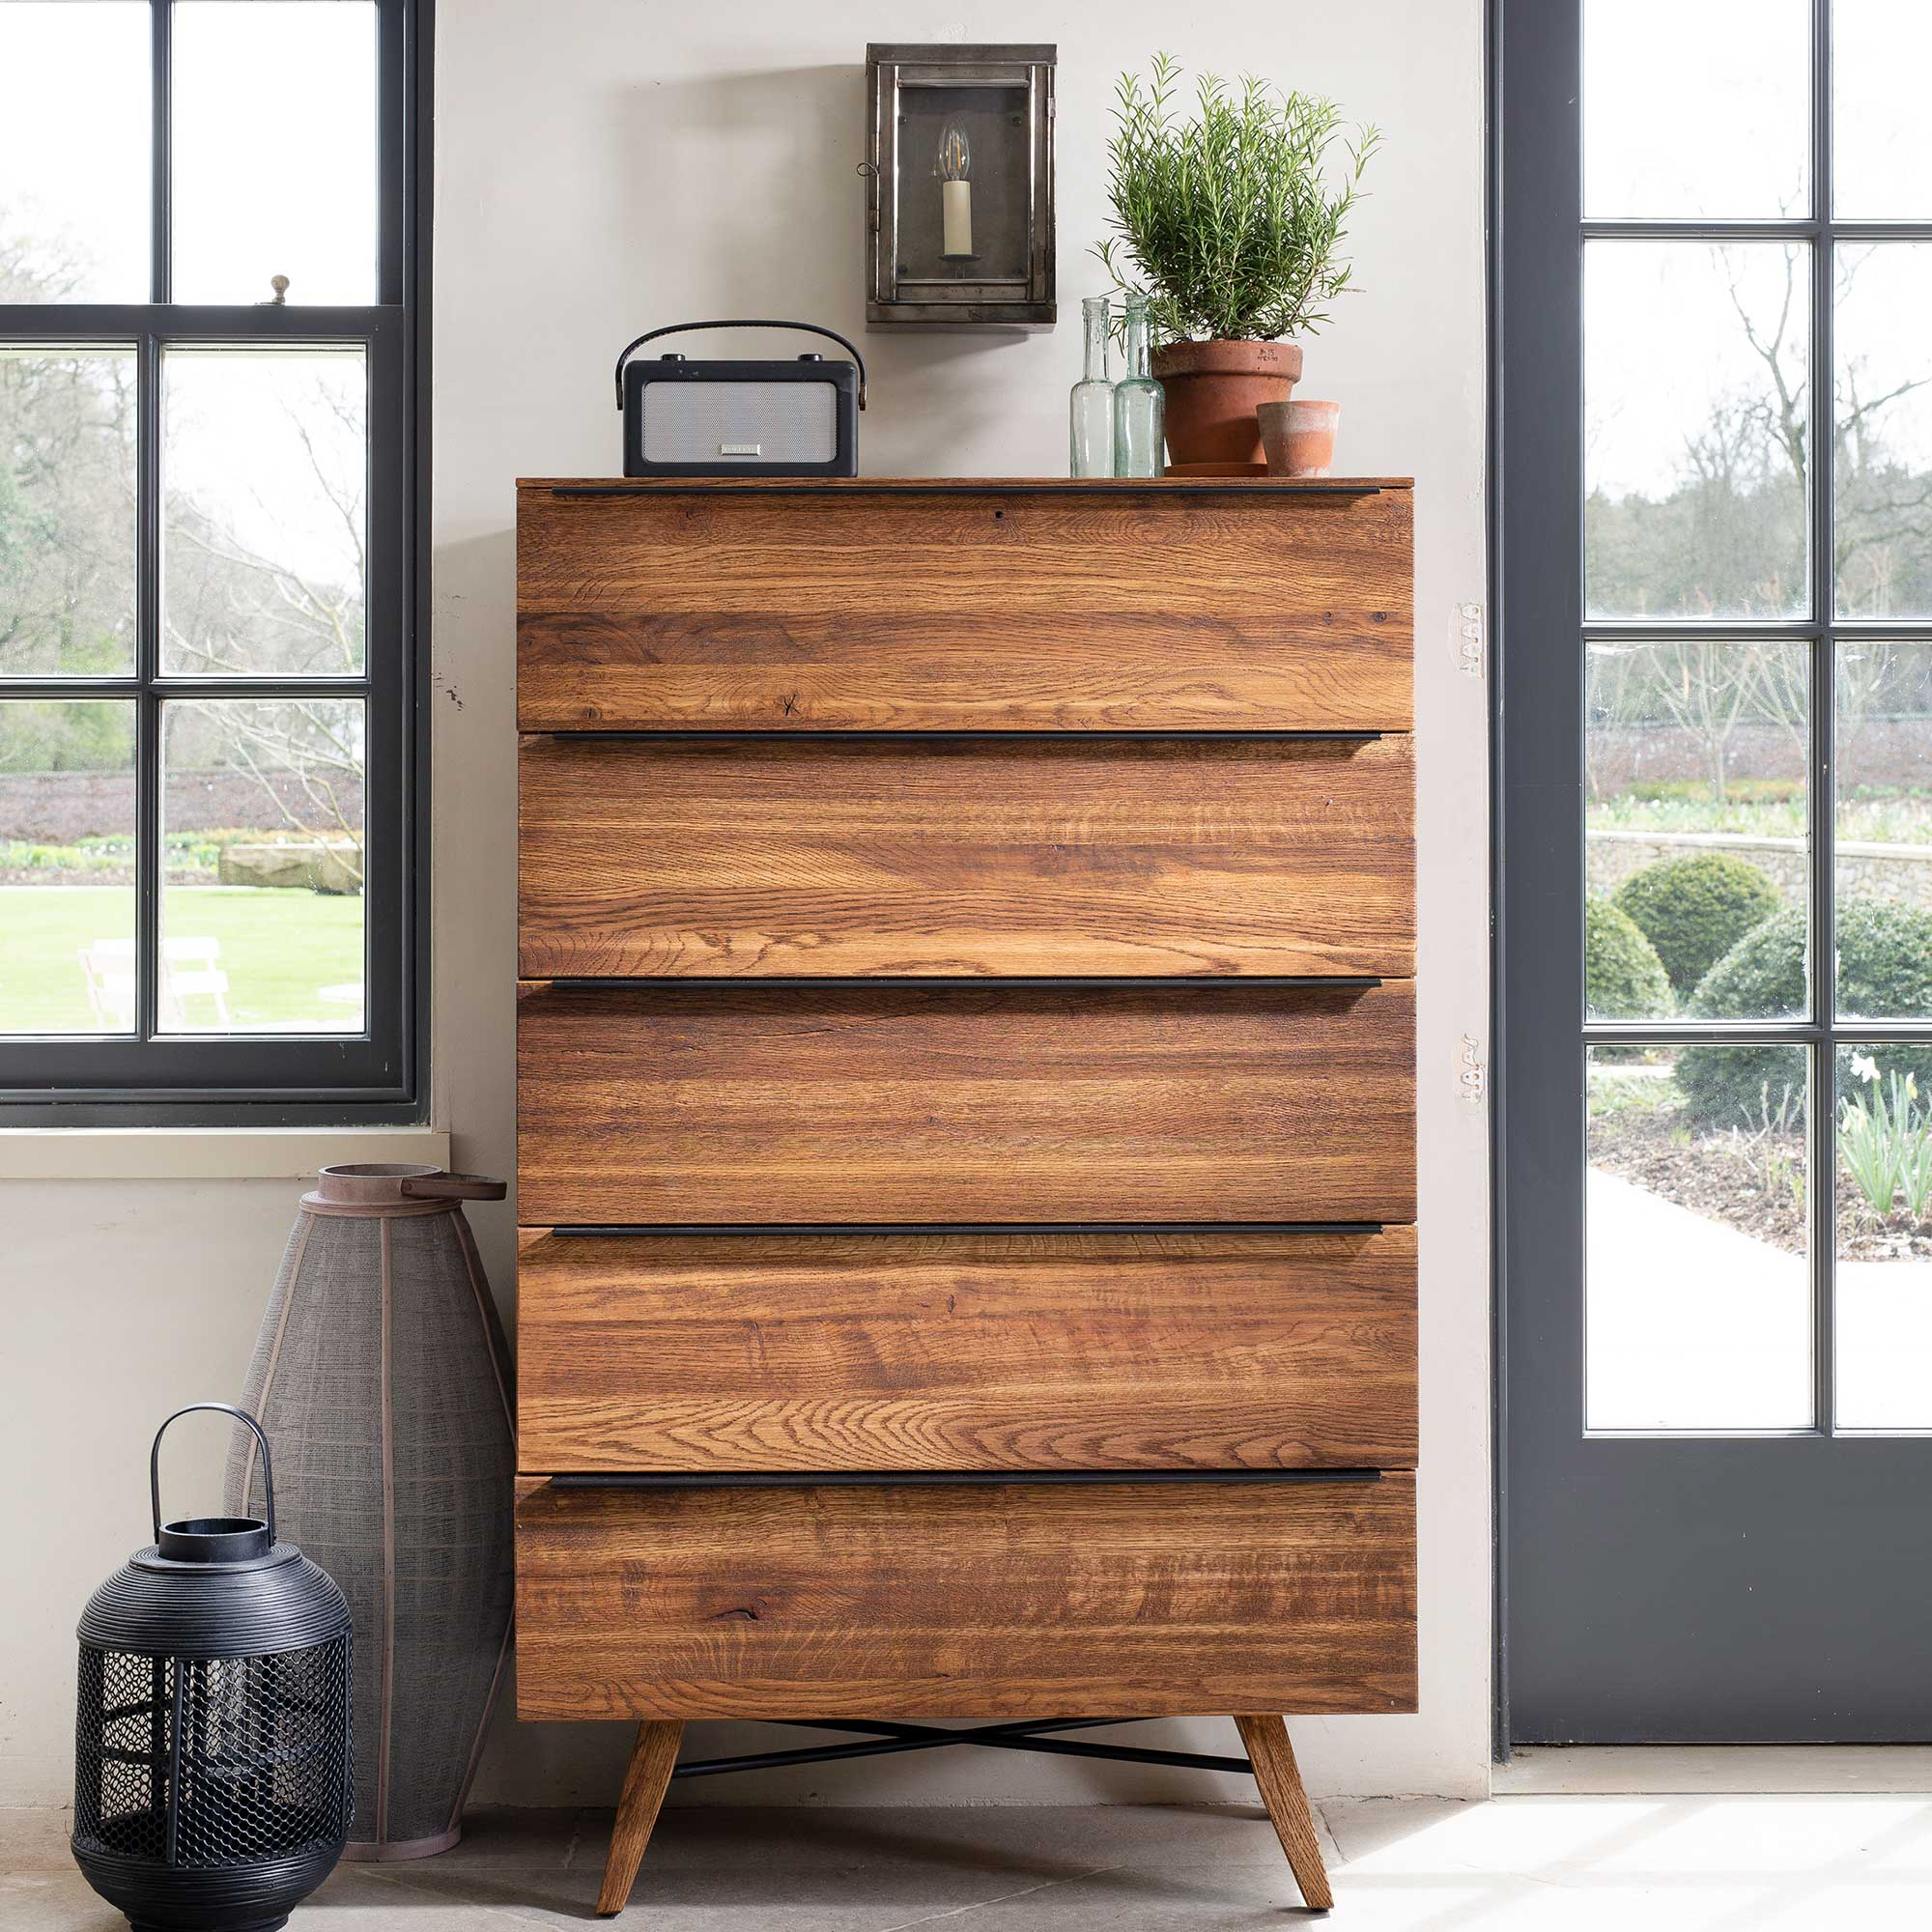 CORMAR OAK TALL CHEST - L82cm x D45cm x H130.8cm